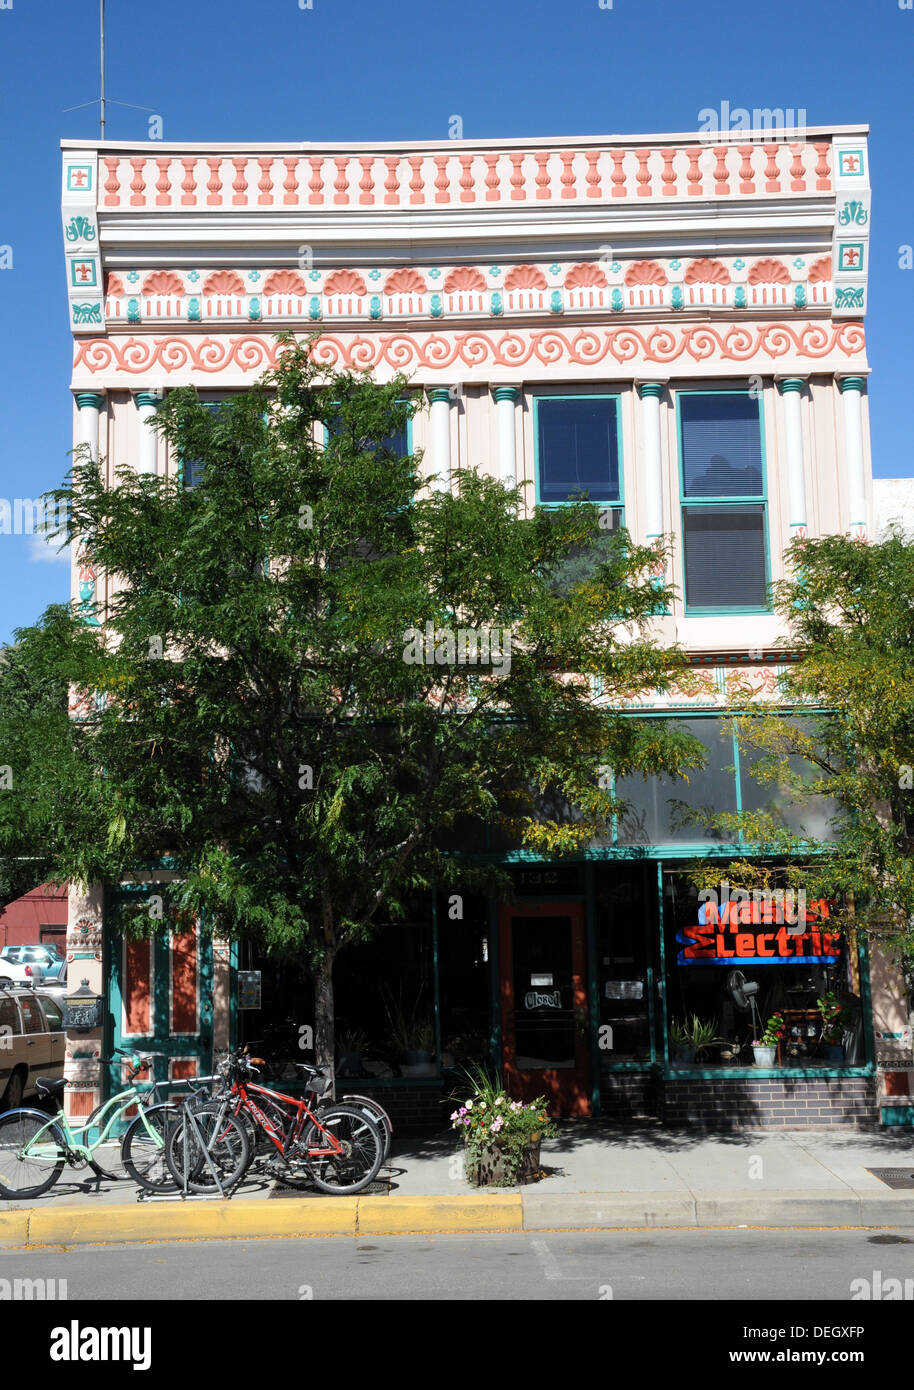 Ornate store front in the town of Salida, Colorado USA. - Stock Image